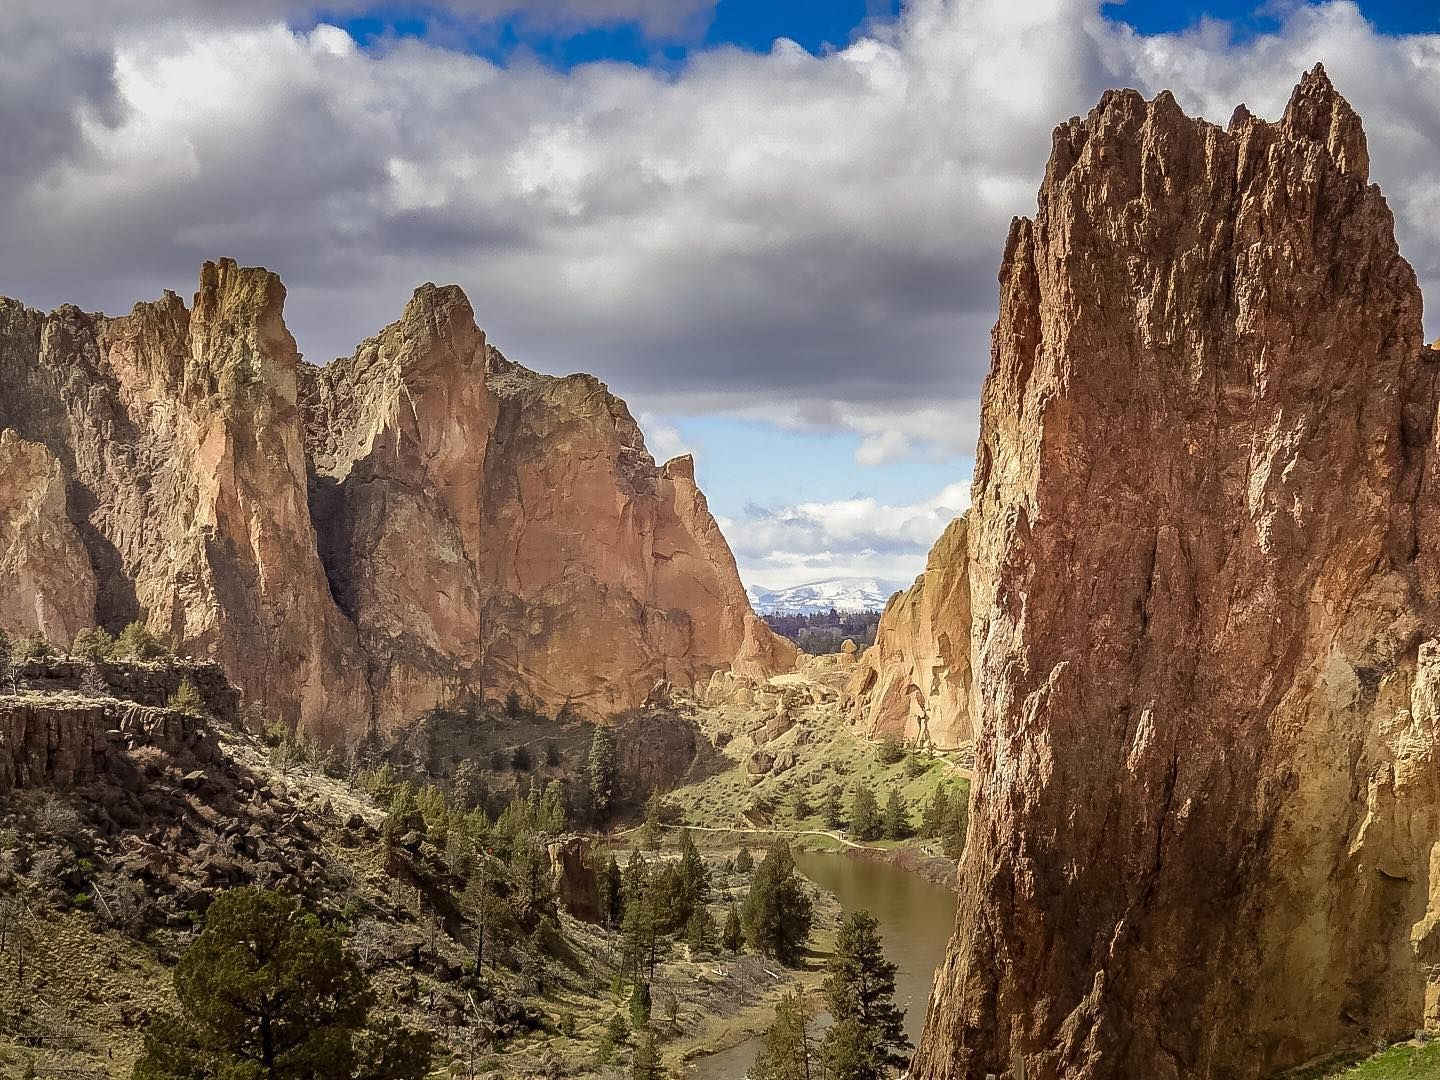 Smith Rock... . . . . . #artofvisuals #earth_deluxe #naturephoto #bestoforegon #EarthVisuals #focalmarked #natureaddict #gottalove_a_ #rsa_rural #exploreoregon #nature_wizards #unlimitedplanet #nature_brilliance #instanaturelover #watchthisinstagood #conqueroregon #naturediversity #oregonexplored #landscape_captures #nature_prefection #iphoneography #iphoneonly #pnwonderland  #awesome_earthpix #allnatureshots #awesomeearth #ourplanetdaily #oregonnw  #iphoneography #fantastic_earth #iphonesia